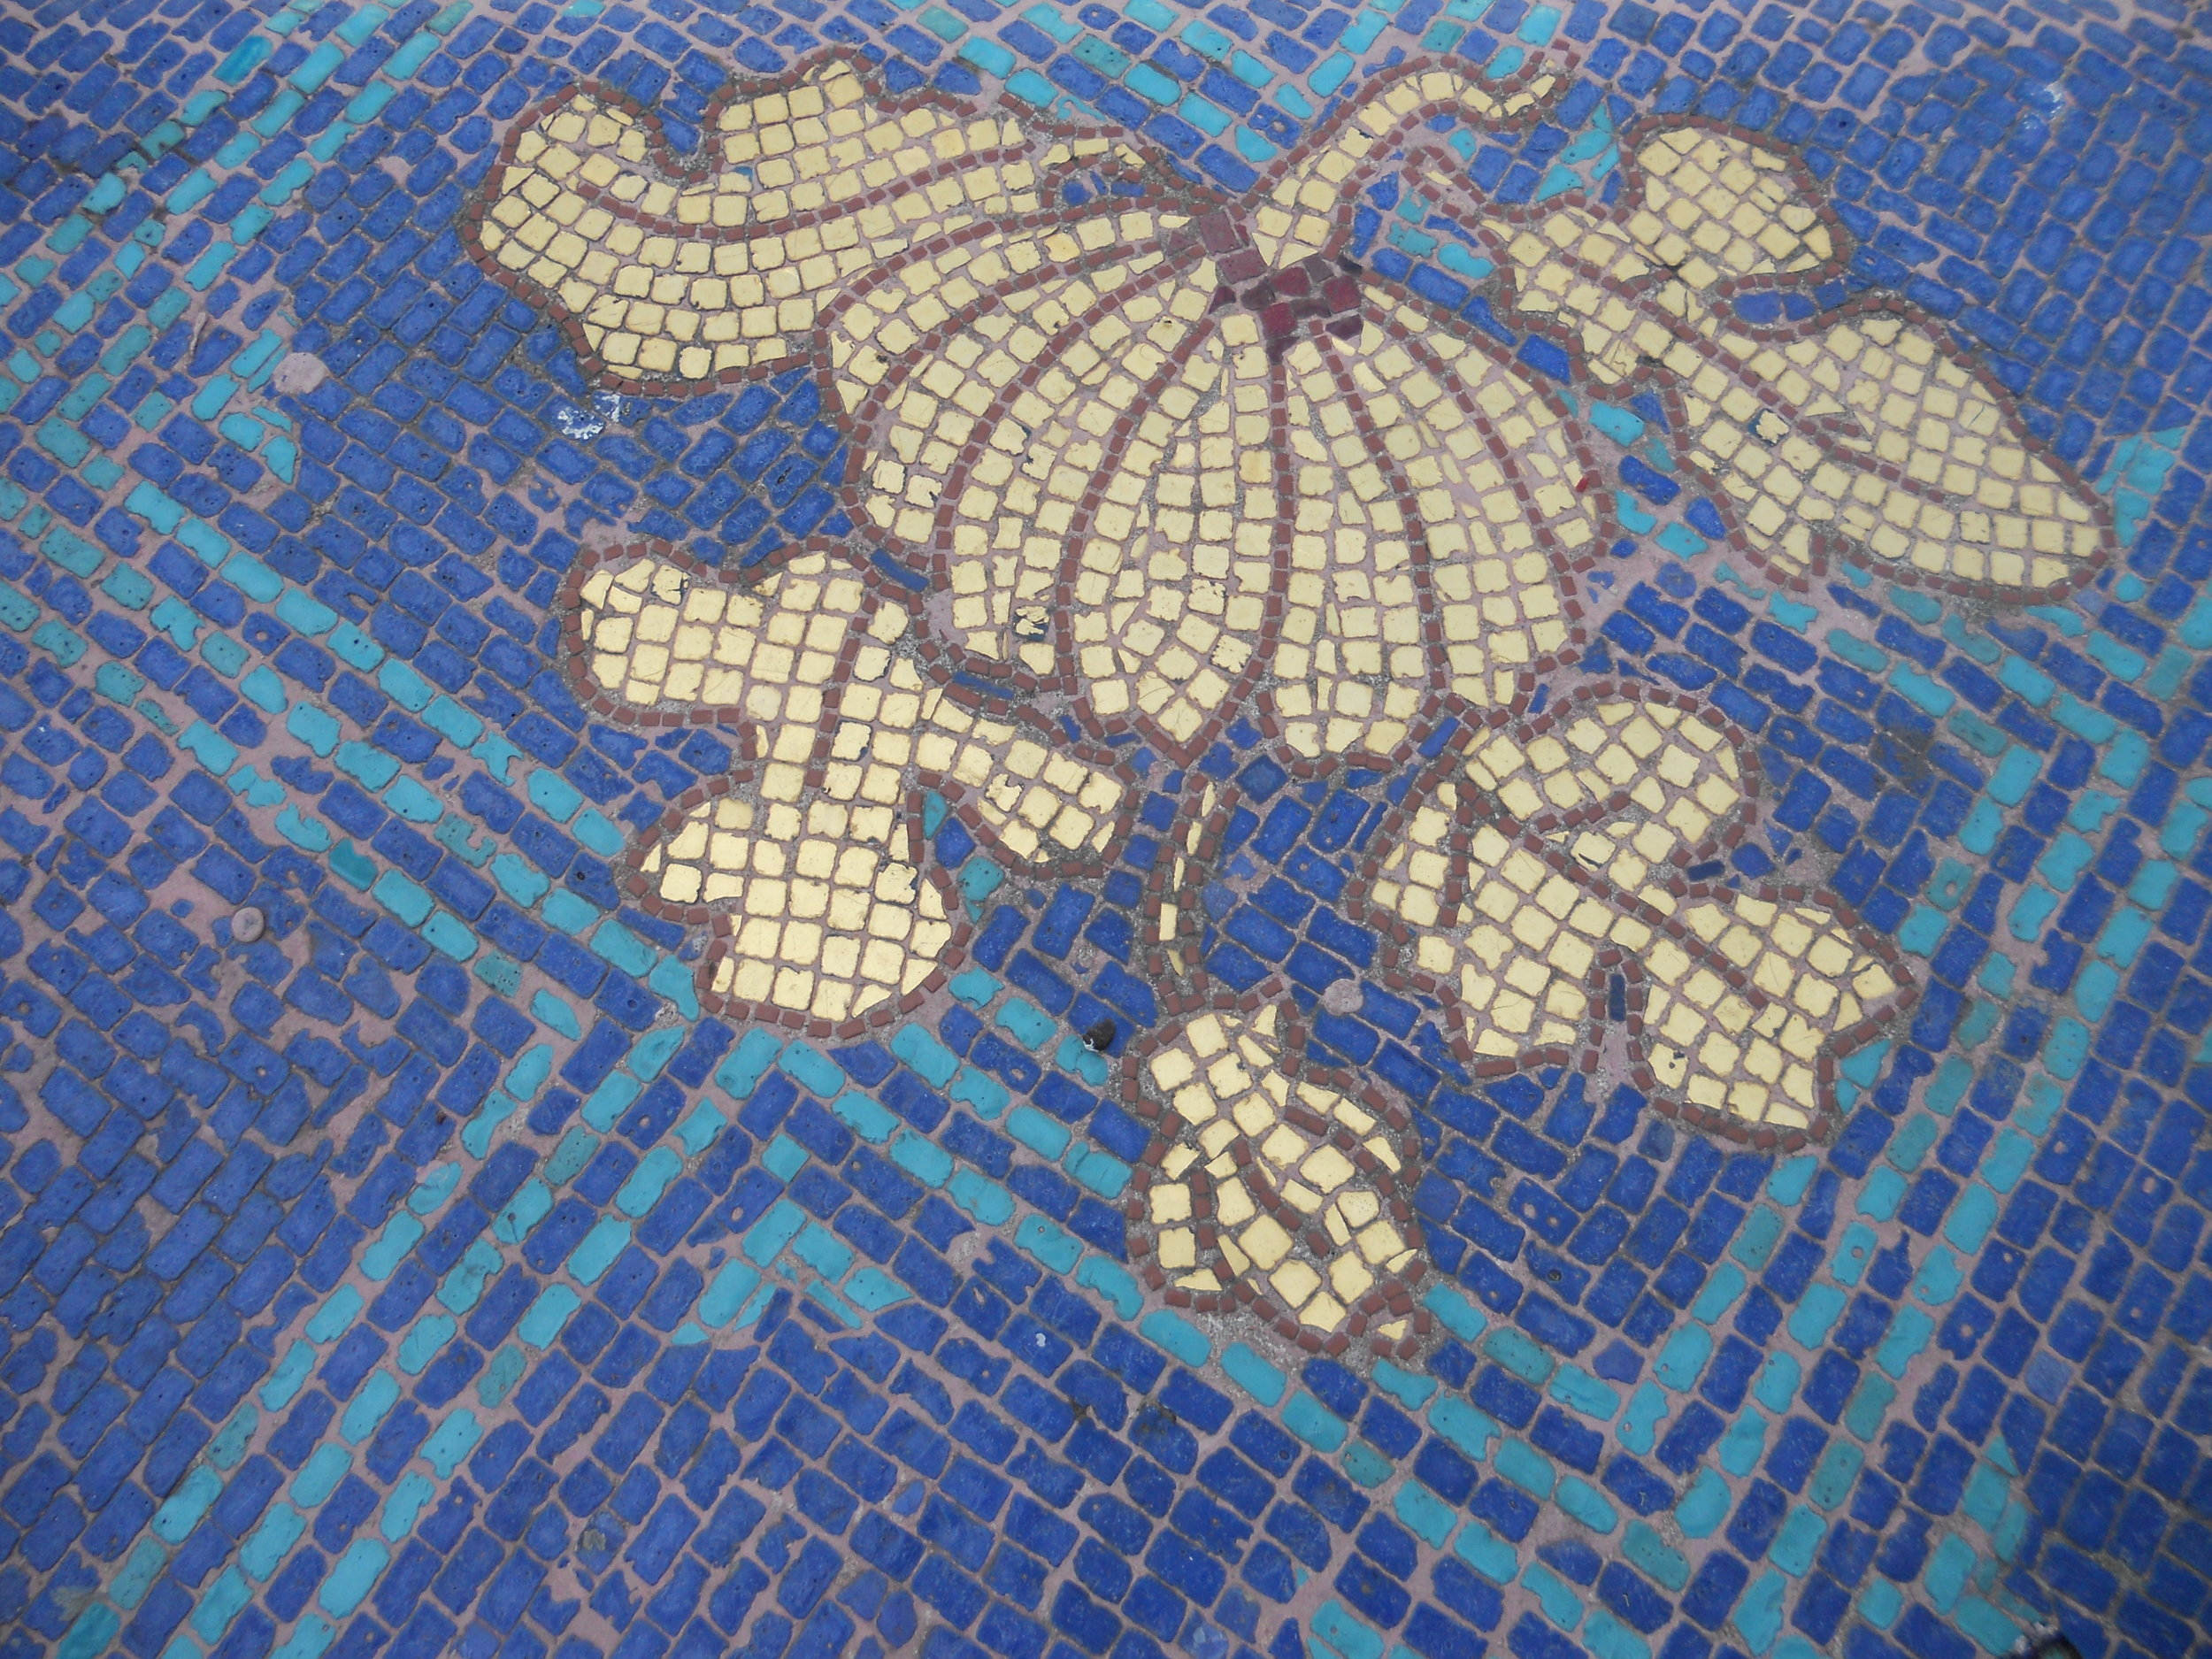 Mosaic tile detail